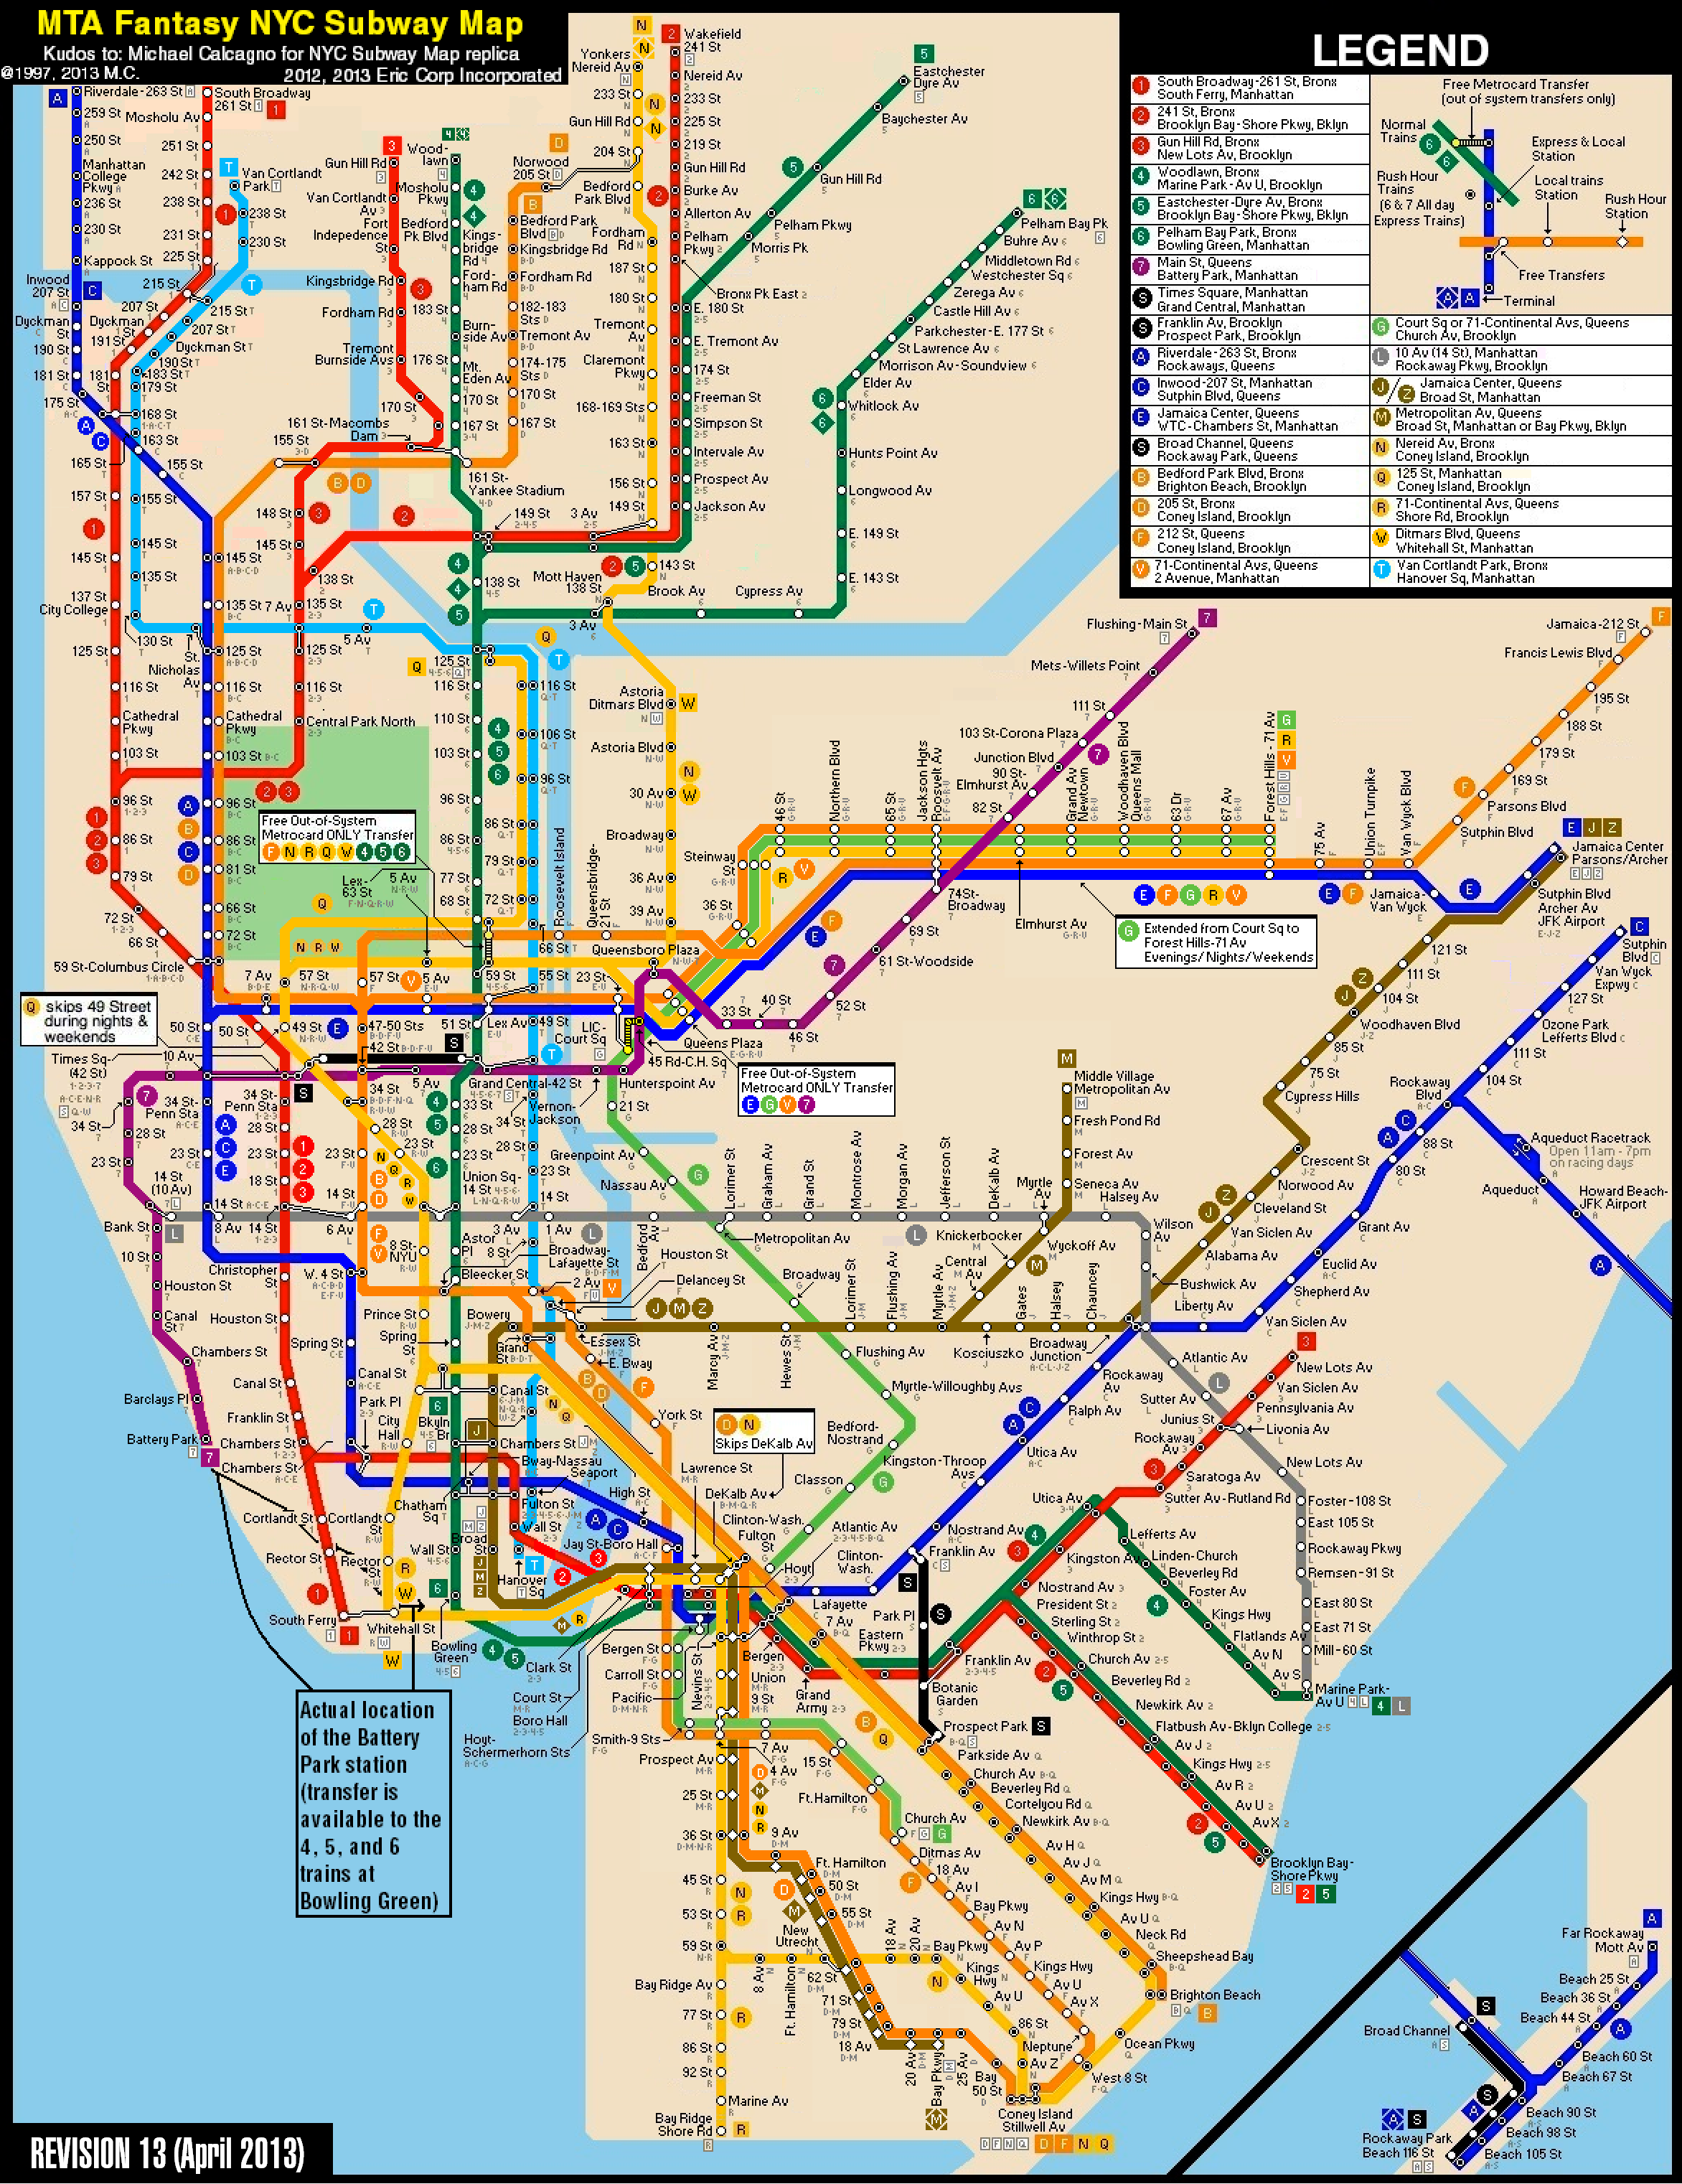 New York City Subway Fantasy Map (Revision 13) by ECInc2 on ...  Train Map on l train line map, new york f train map, mta r train map, new york train system map, bronx 5 train map, mta f train map, n r train map, mta e train map, ny city train map, subway e train map, new york city train map, l train subway map,